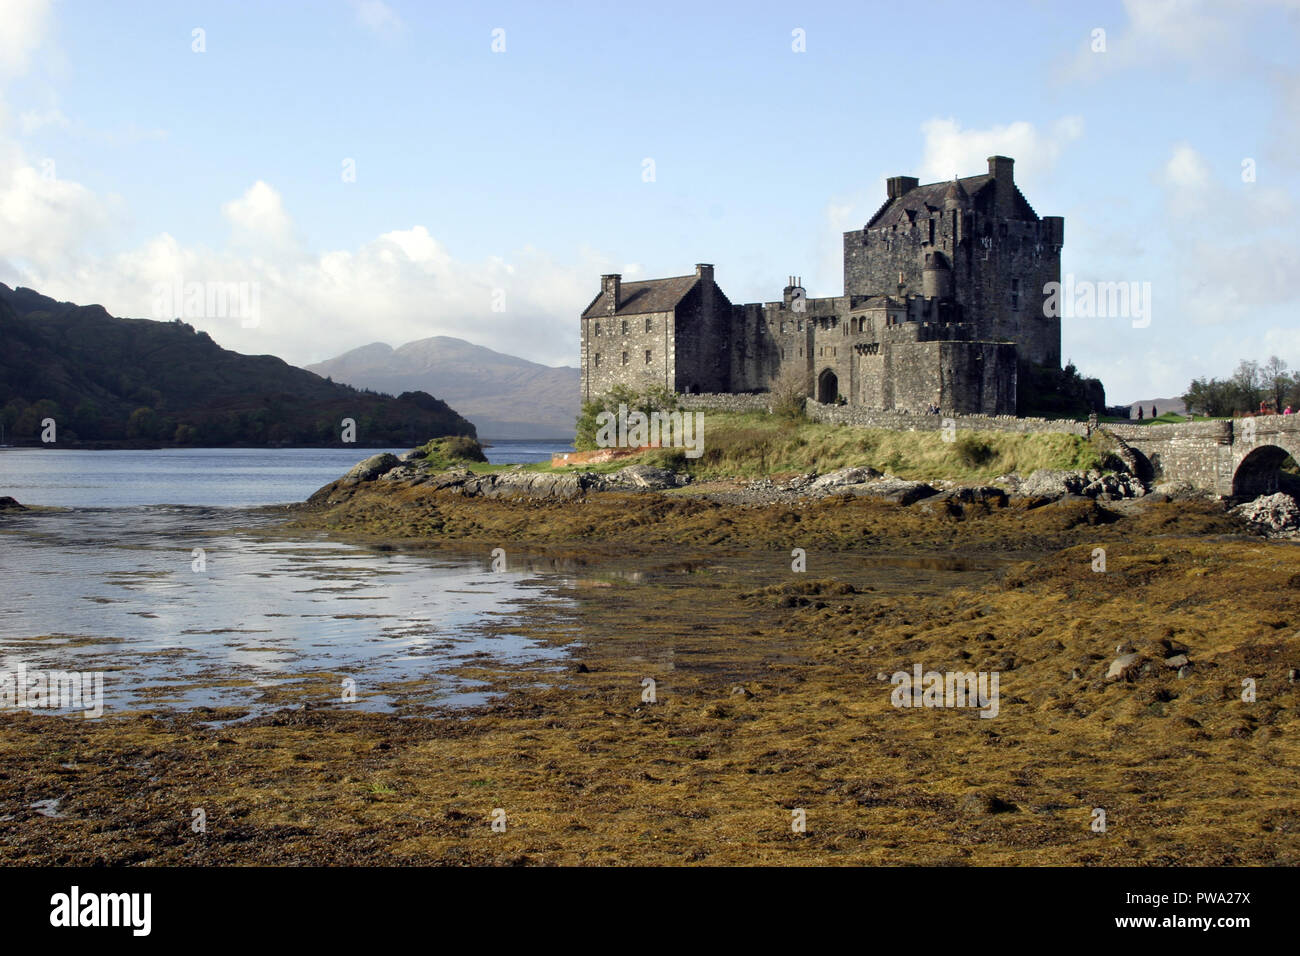 Eilean Donan castle, which dates back to the 13th century, sits on a small island in Loch Duich in Scotland. It is one of the most popular, most photographed castles in Scotland if not the United Kingdom. It has also made a few appearances in feature films. - Stock Image